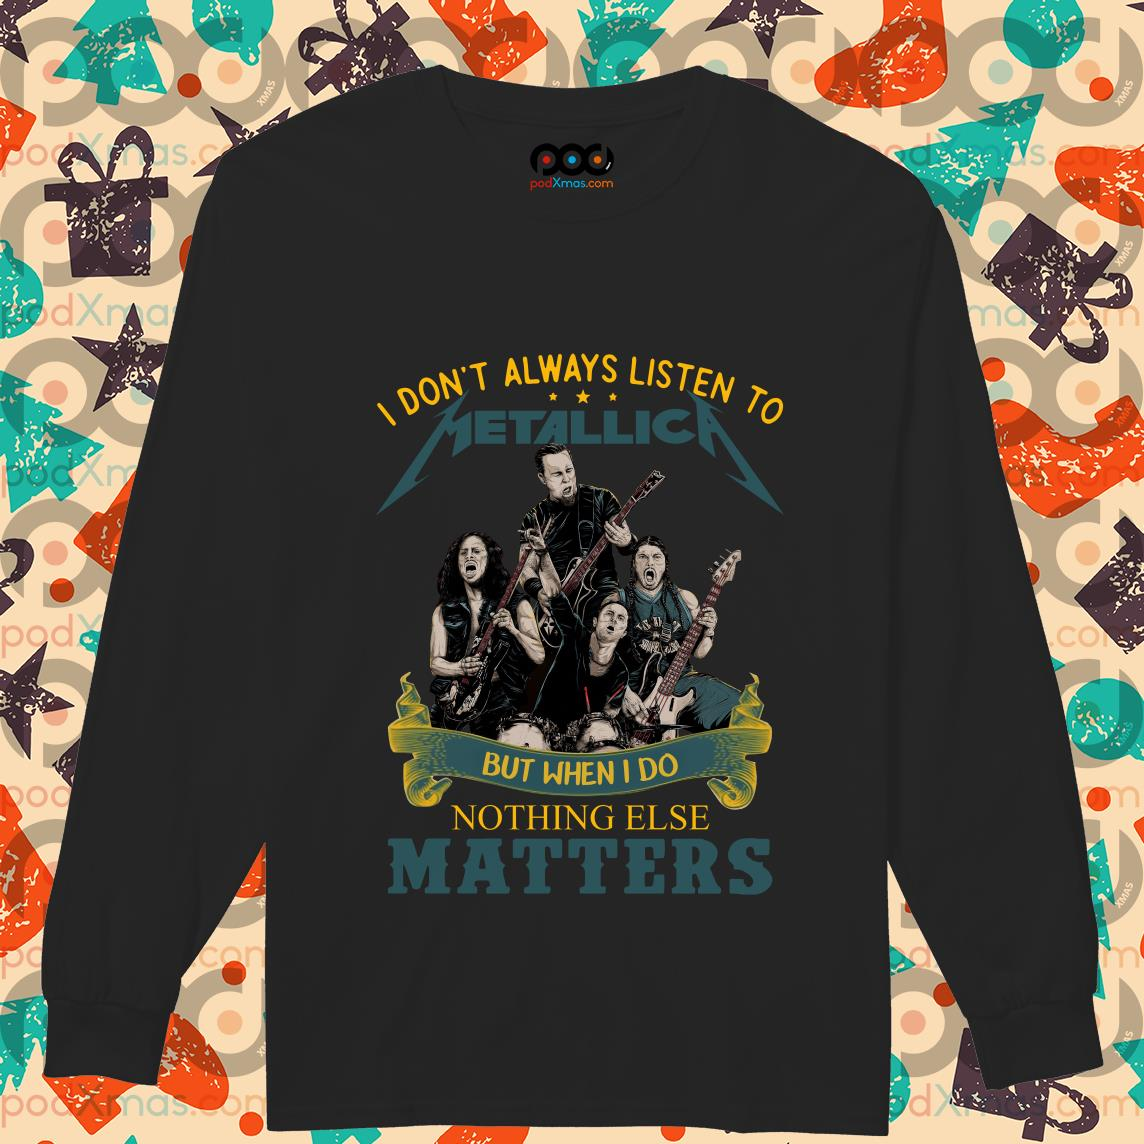 I don't always listen to Metallica but when I do nothing else matters longsleeved